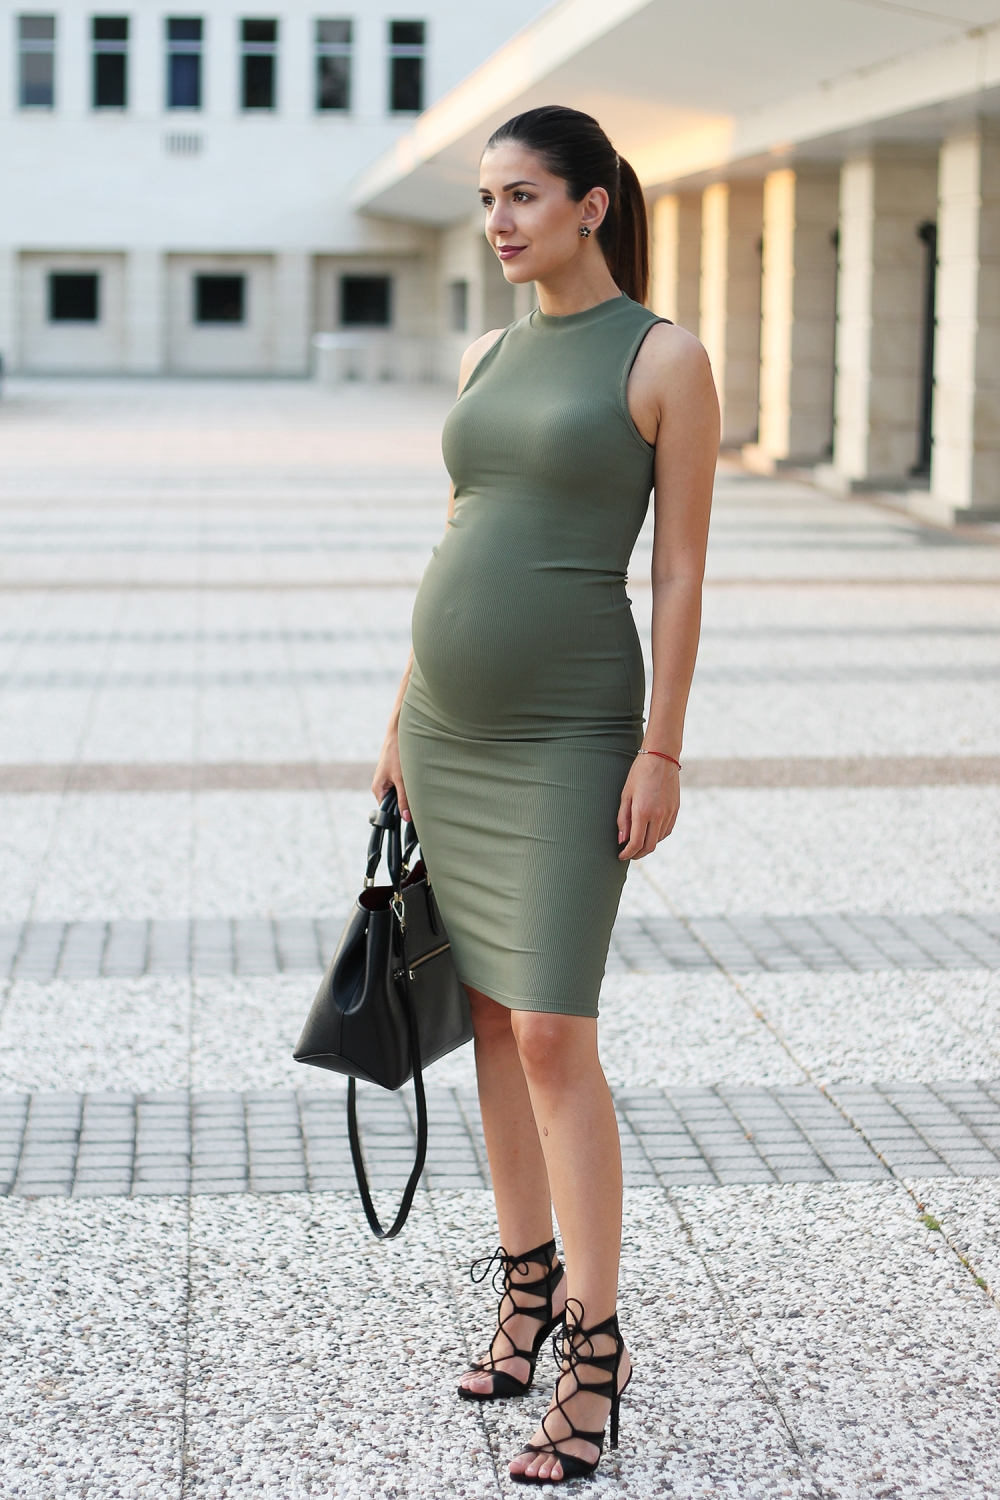 Pregnancy outfit: Military green dress and black sandals